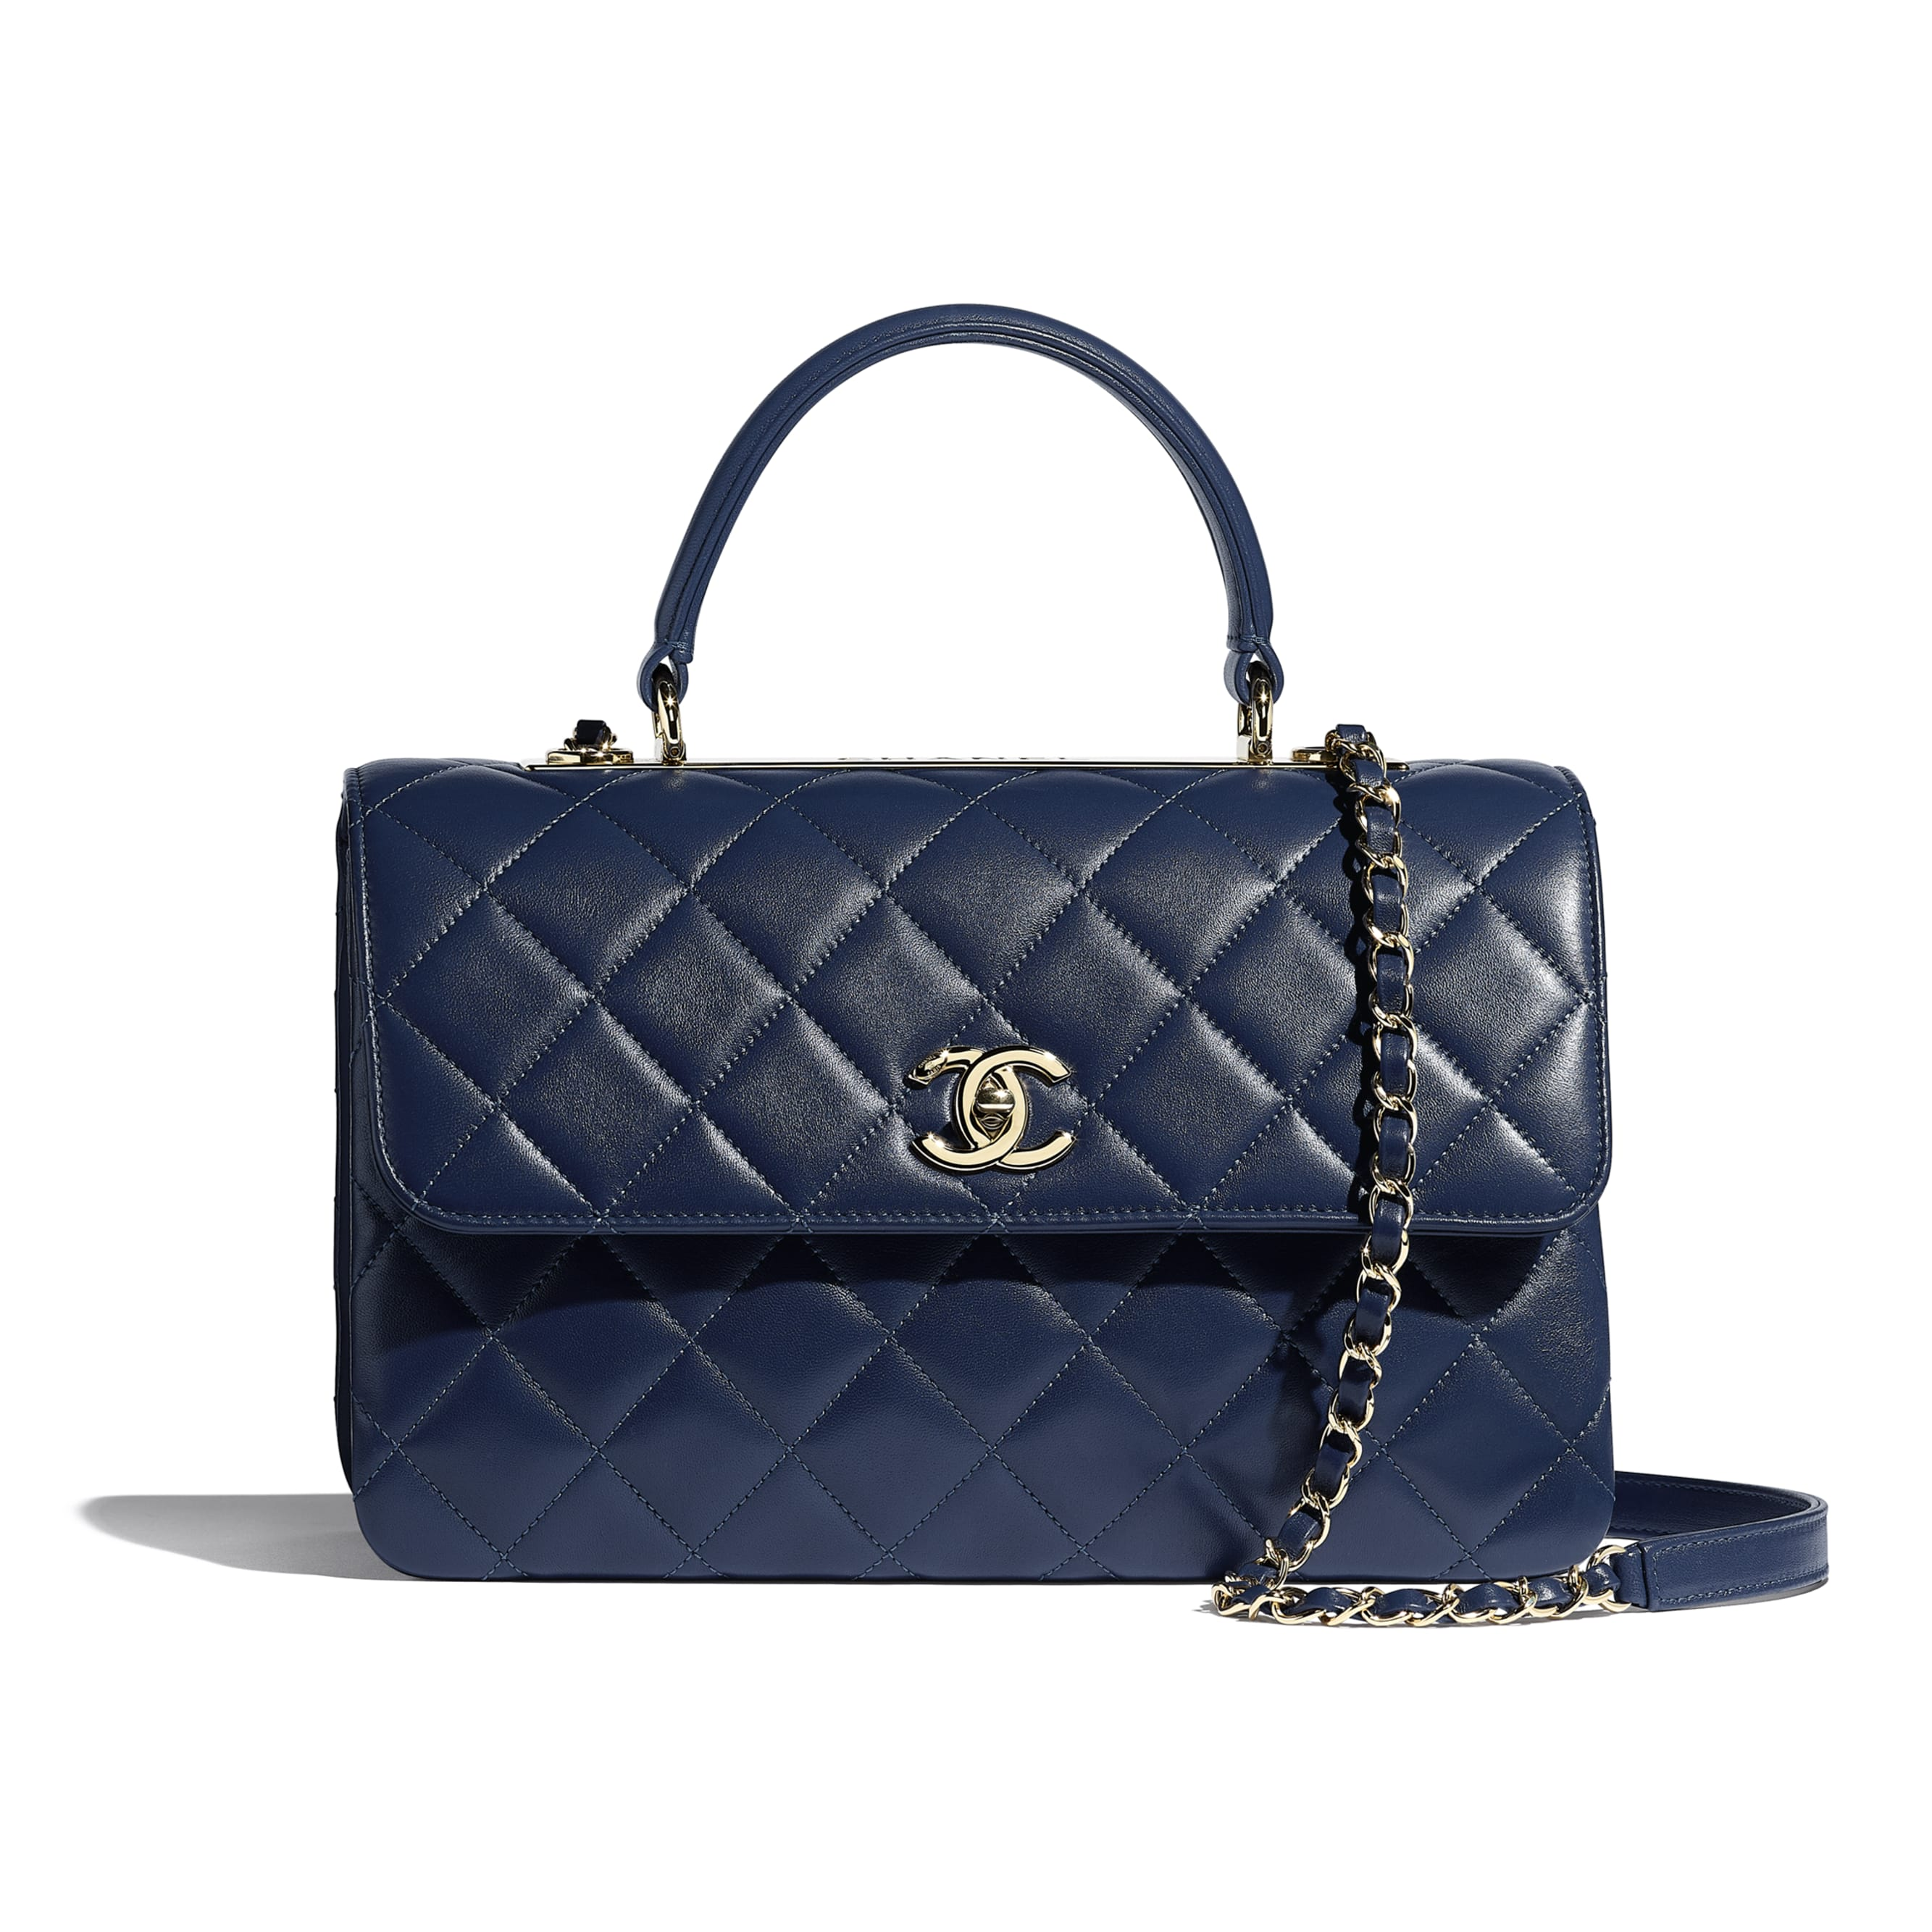 Flap Bag with Top Handle - Navy Blue - Lambskin & Gold-Tone Metal - CHANEL - Default view - see standard sized version